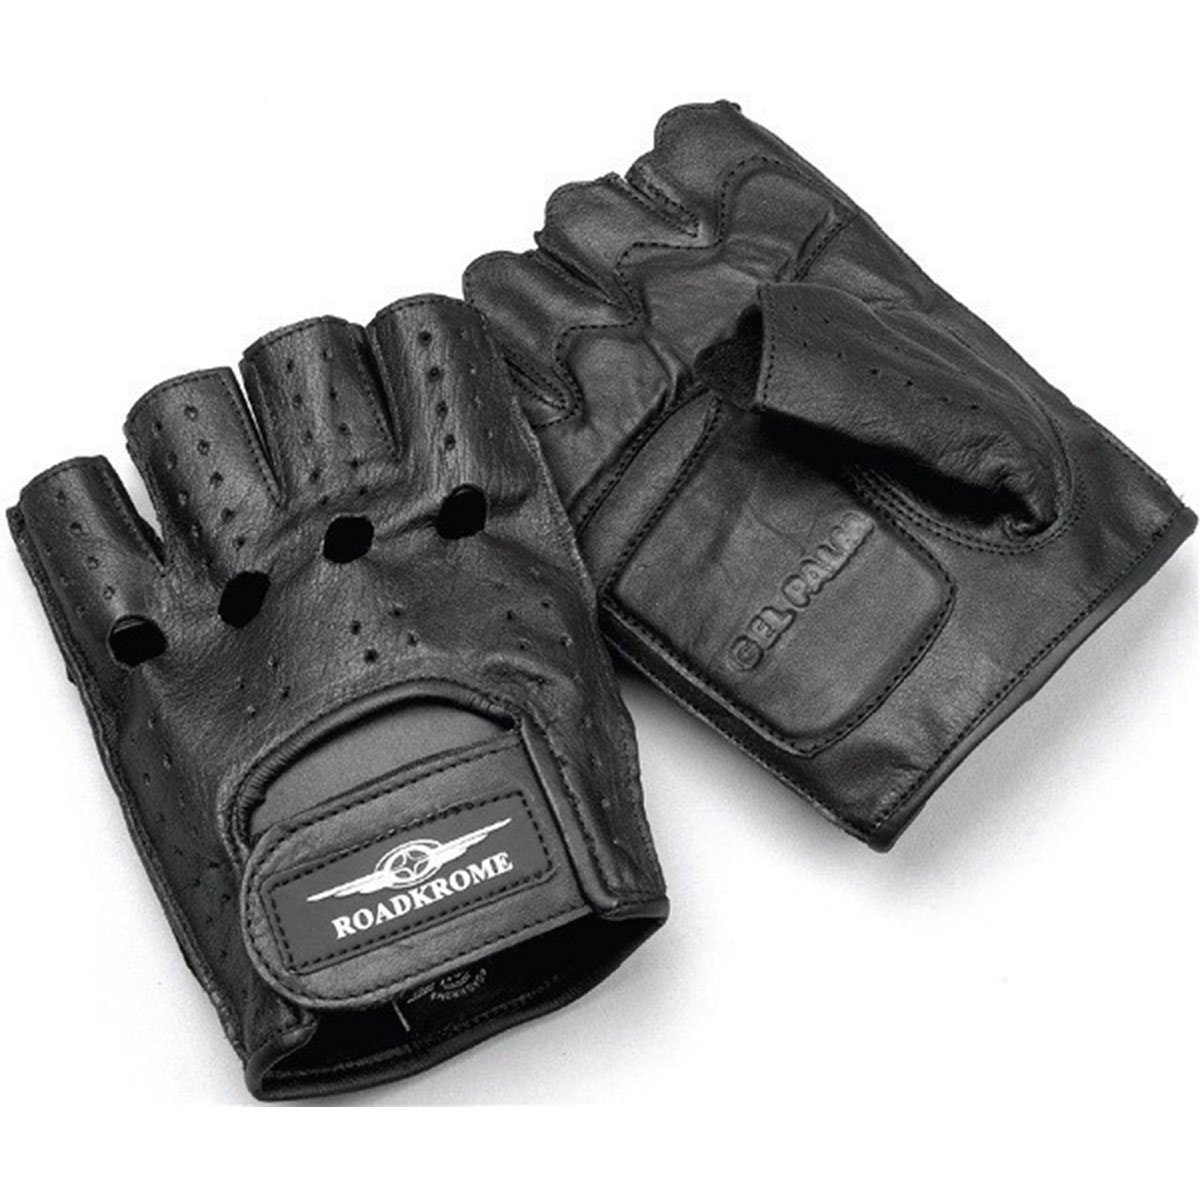 Roadkrome Chopper Deluxe Adult Leather Motorcycle Gloves Black//Large 29-004